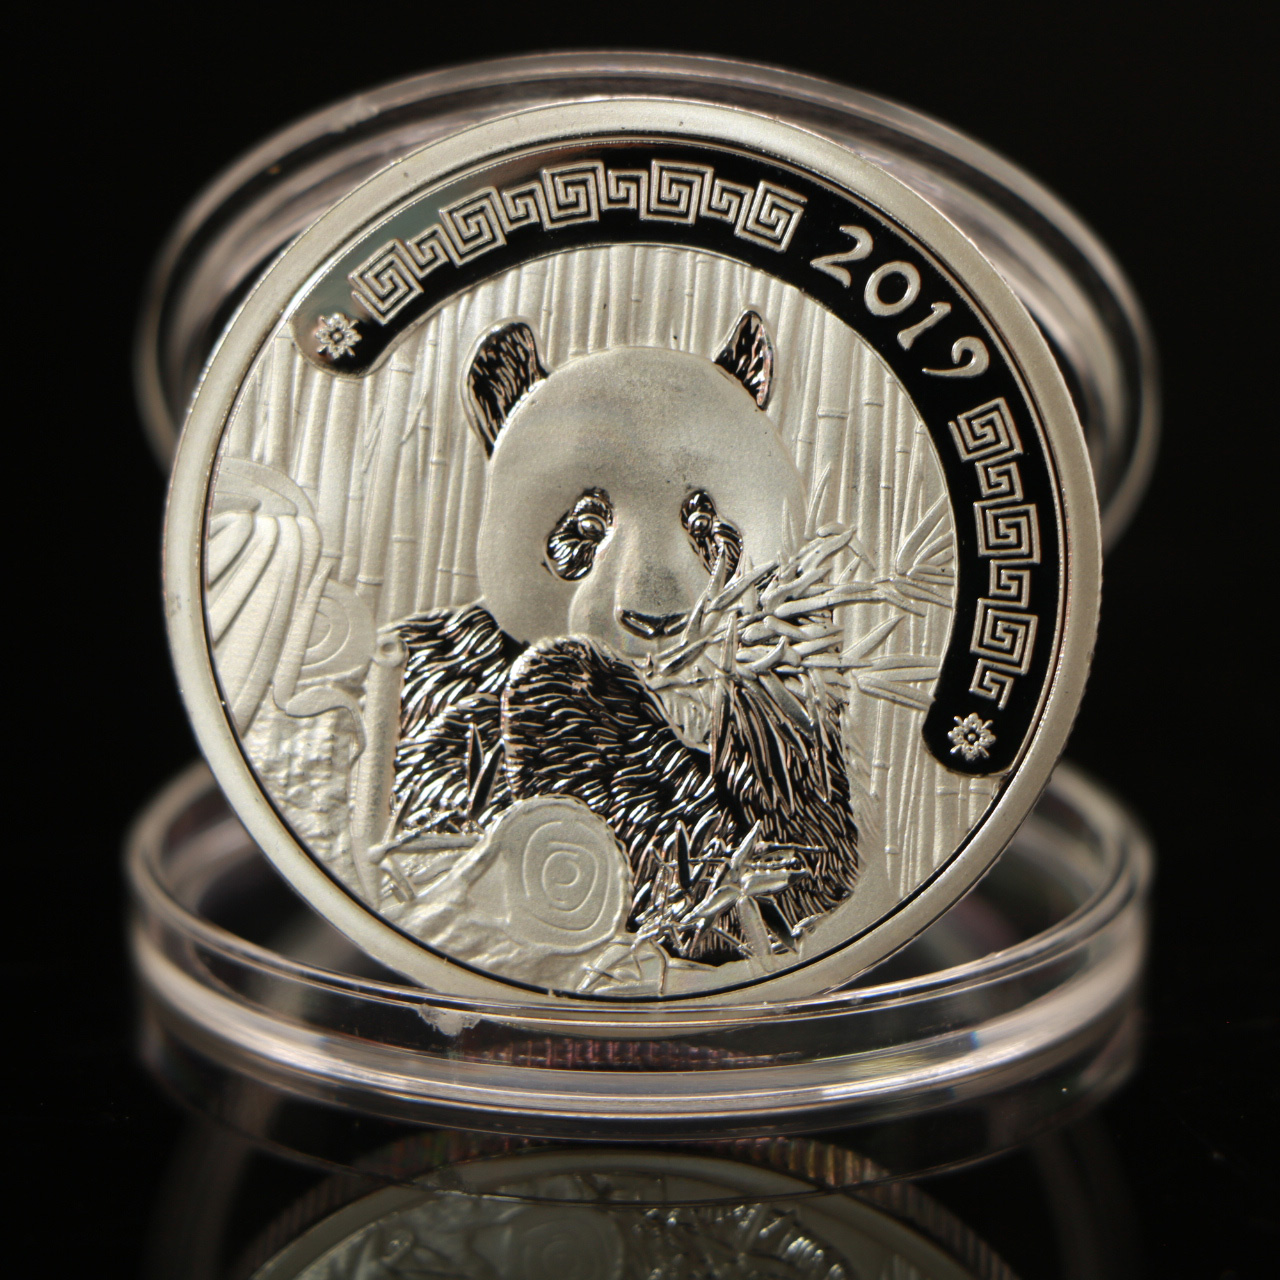 WR 2019 Year of The Pig Silver Coin Set 5pcs The Little Pig Lucky New Year Gifts